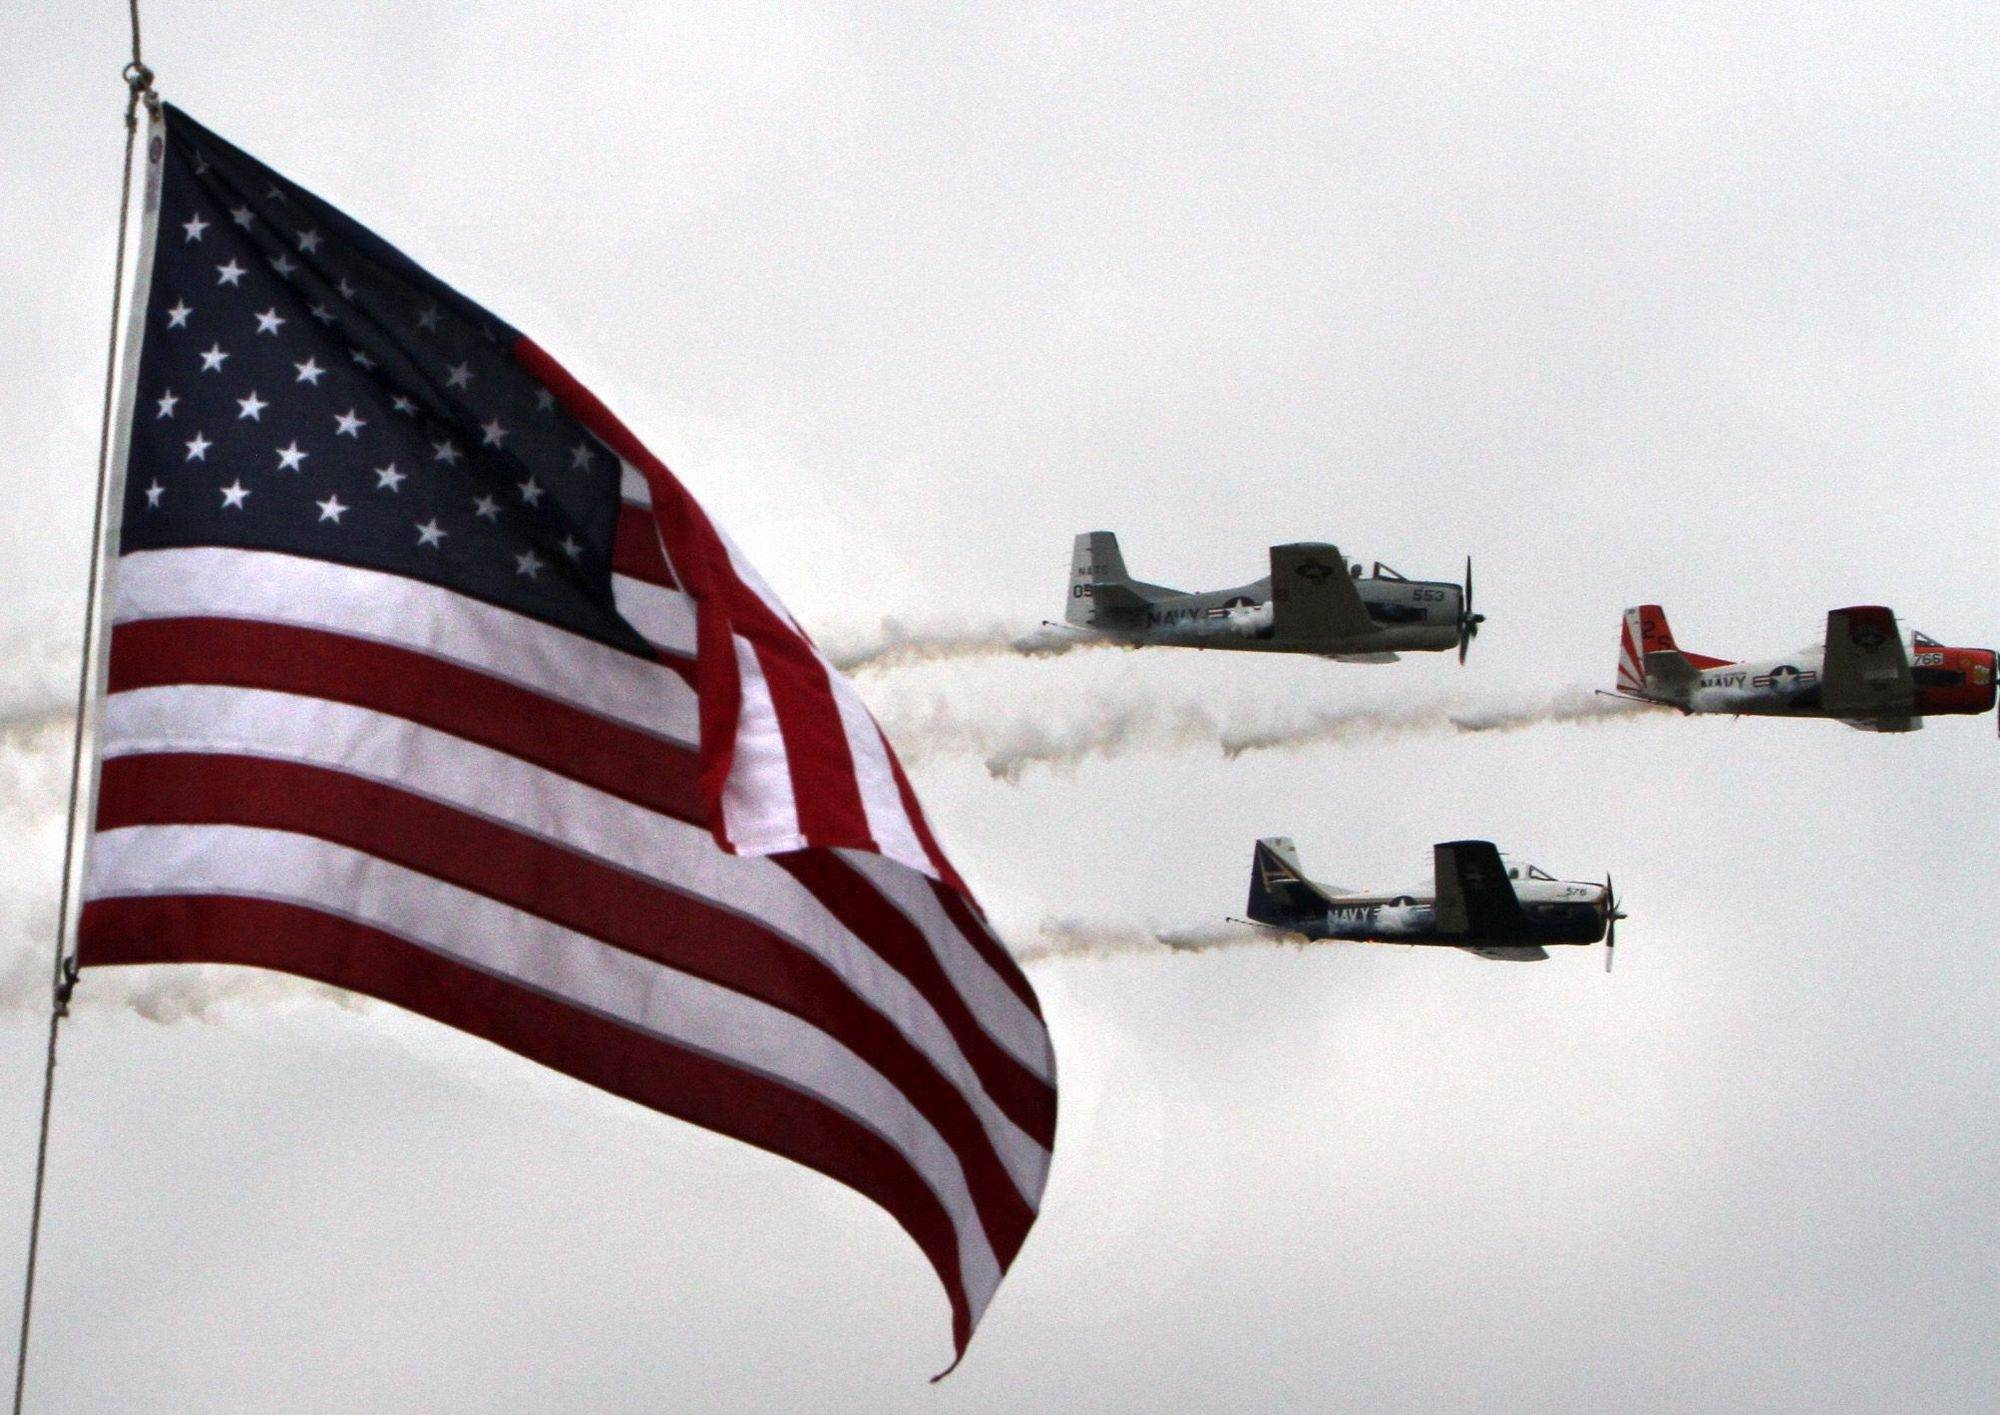 Rain, clouds? No problem for airshow in Lake County